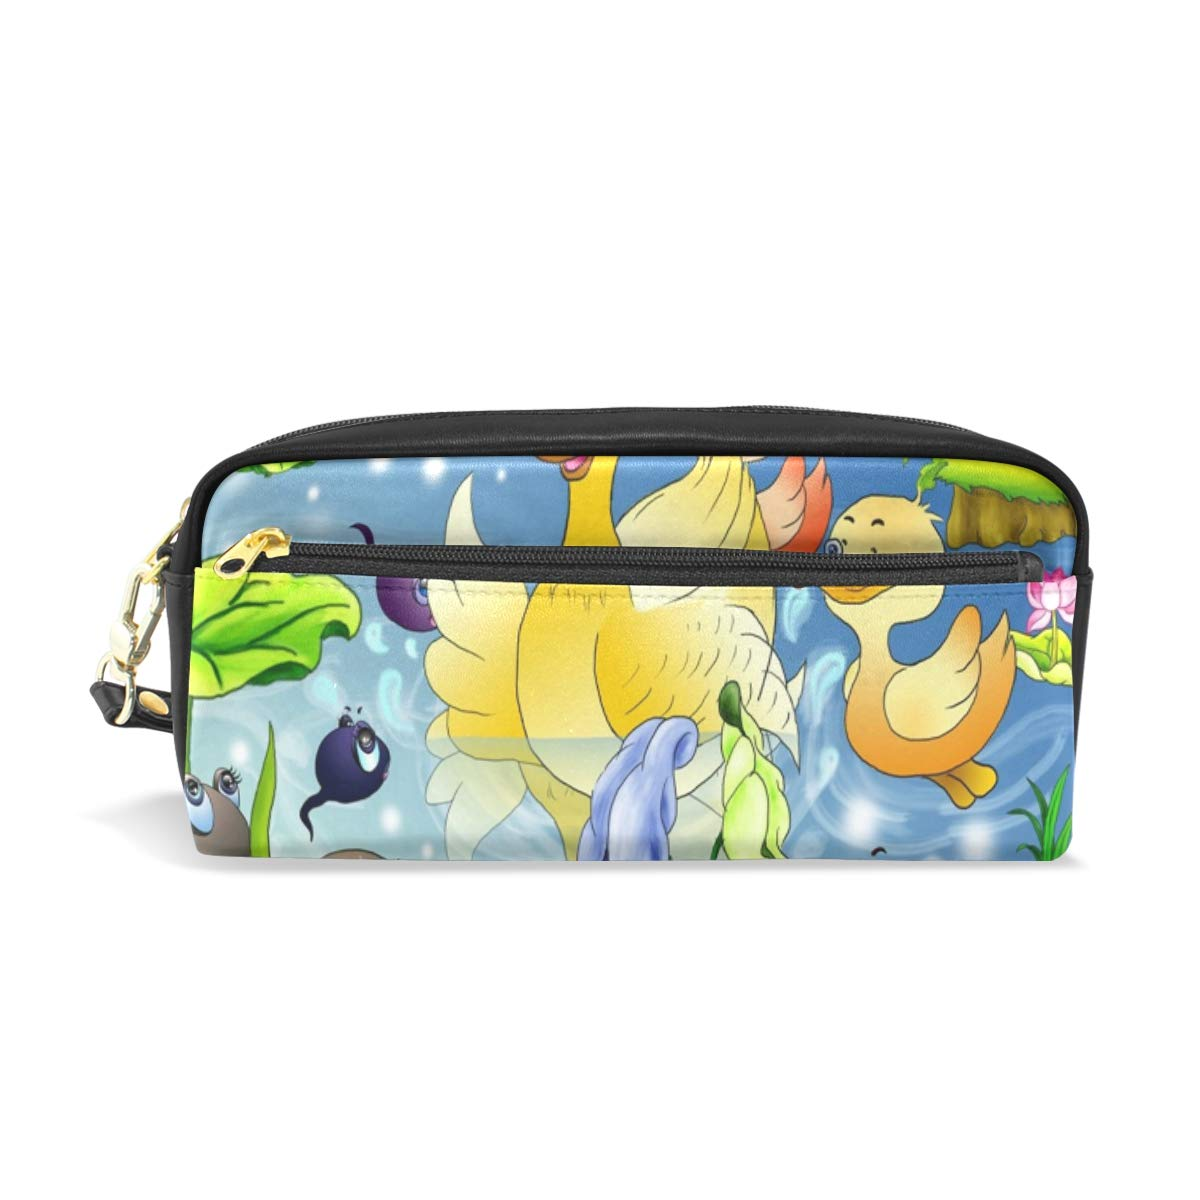 reputable site f81b0 eb161 Amazon.com : Pencil Case Ducky Pond iPhone Cute Big Stationery ...